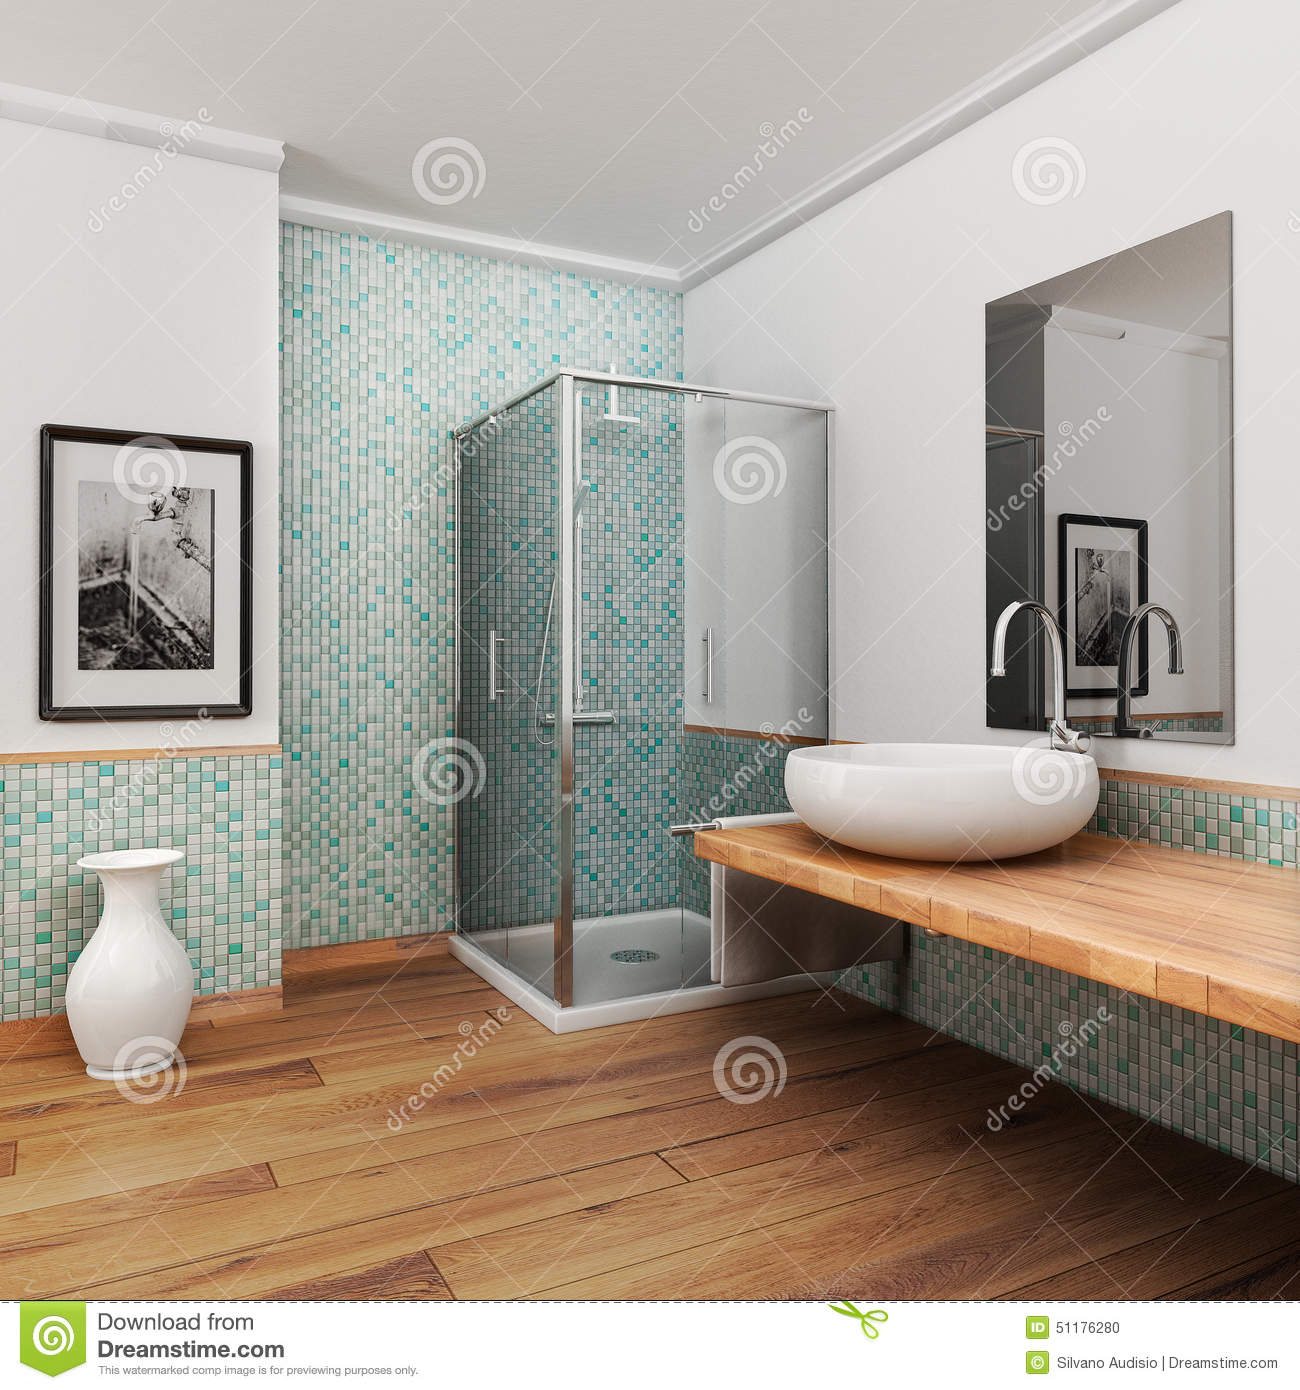 Large Bathroom Stock Illustration - Image: 51176280